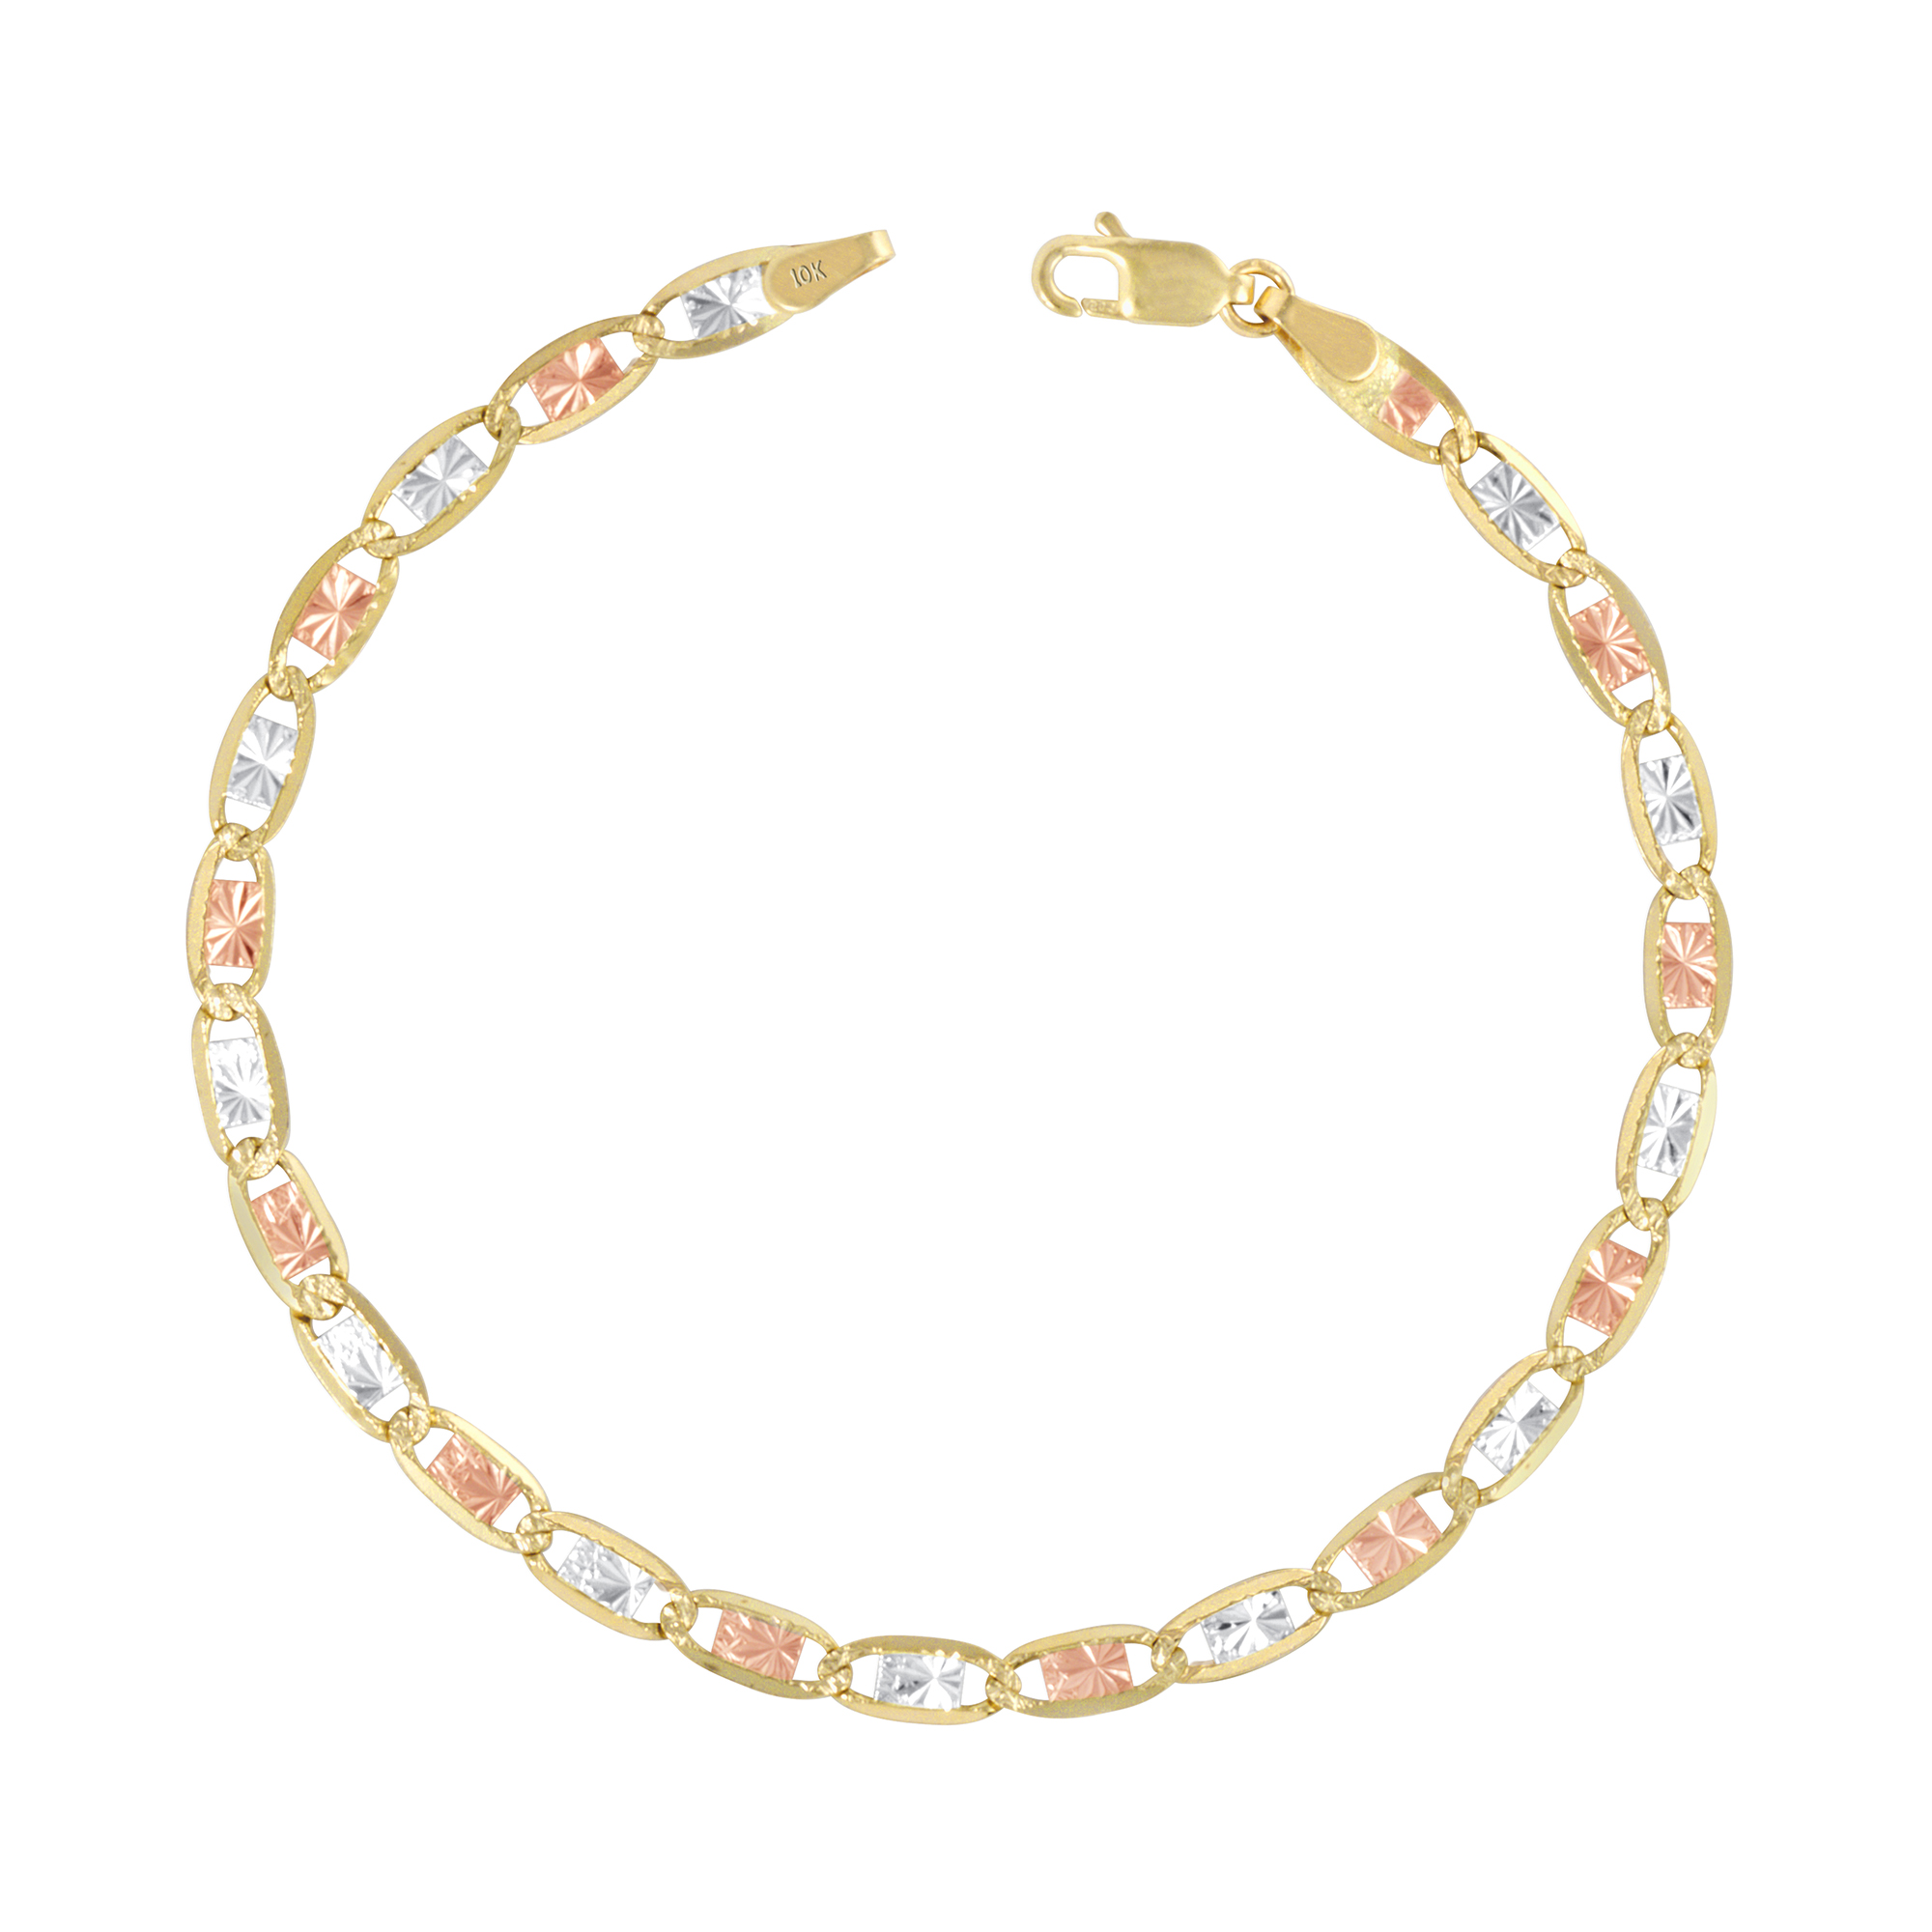 5+1 Wellingsale 14k Tri 3 Color Gold Polished 2.5mm ID Valentino Bracelet with Spring Ring Clasp